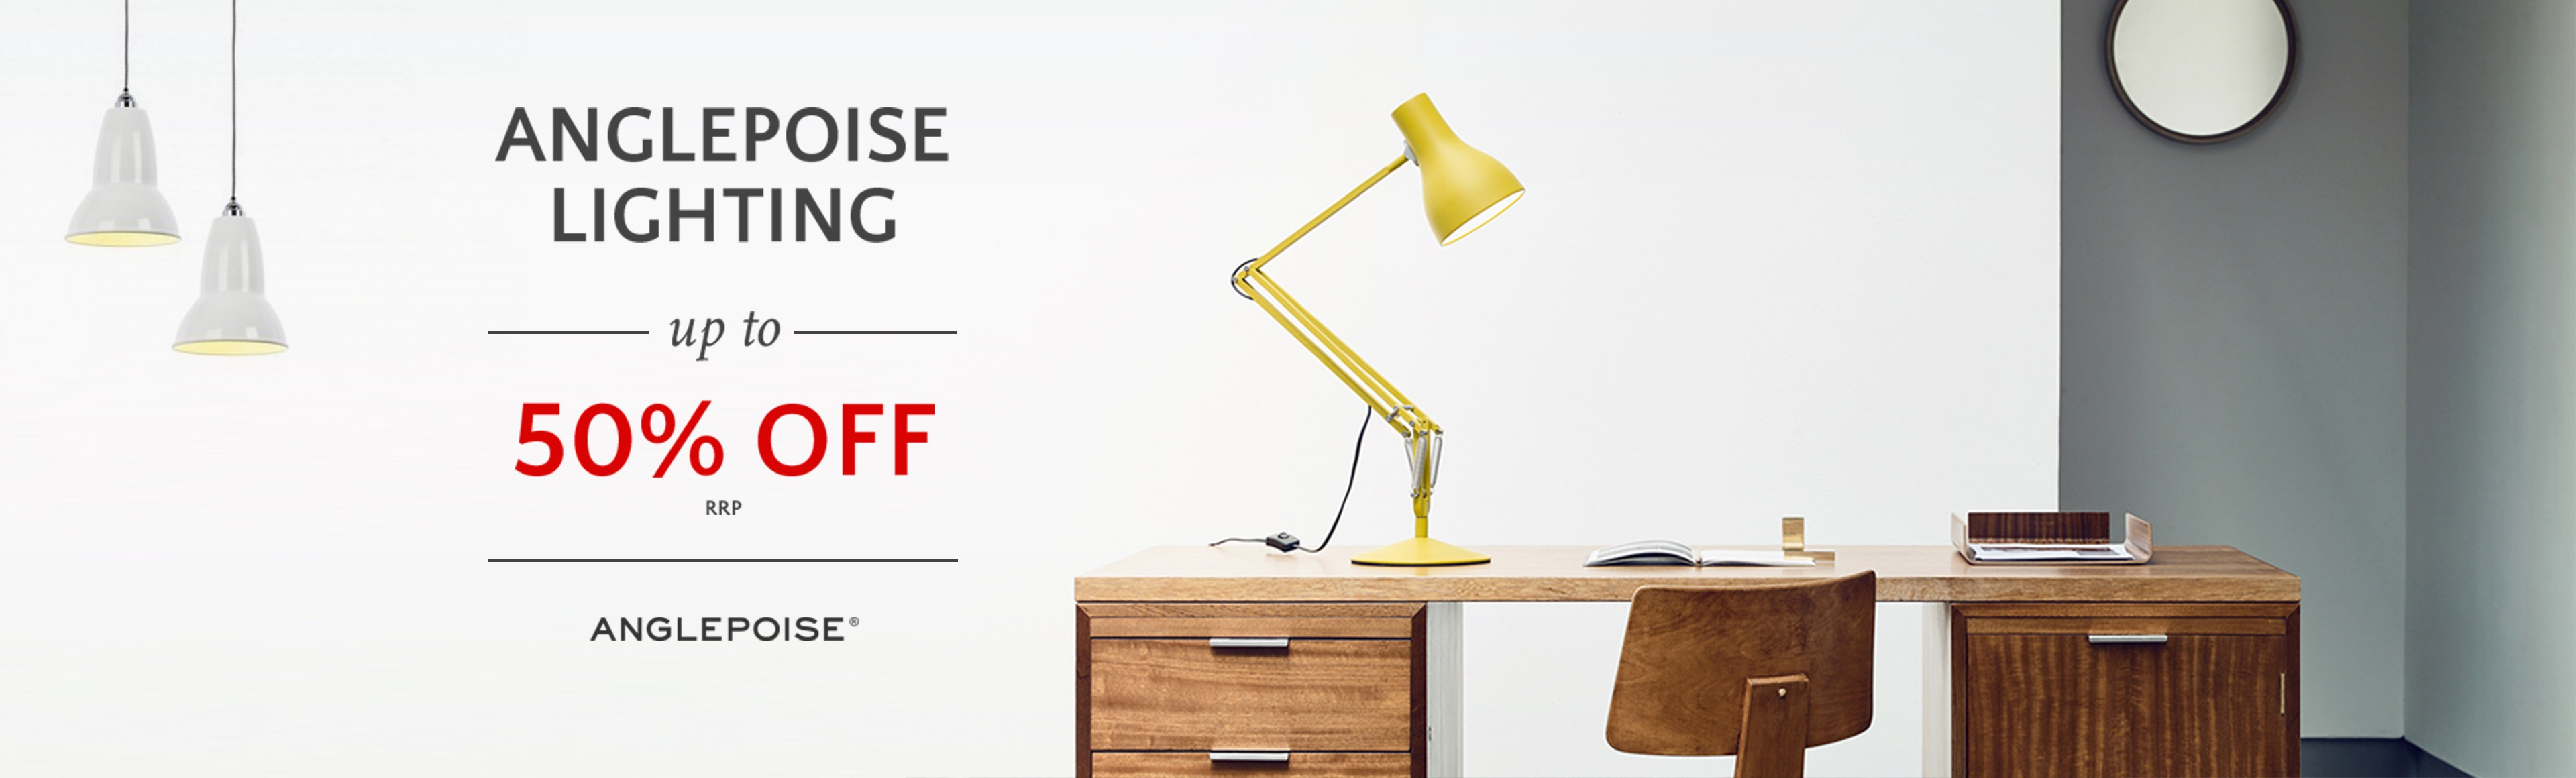 Anglepoise Lighting - up to 50% off RRP